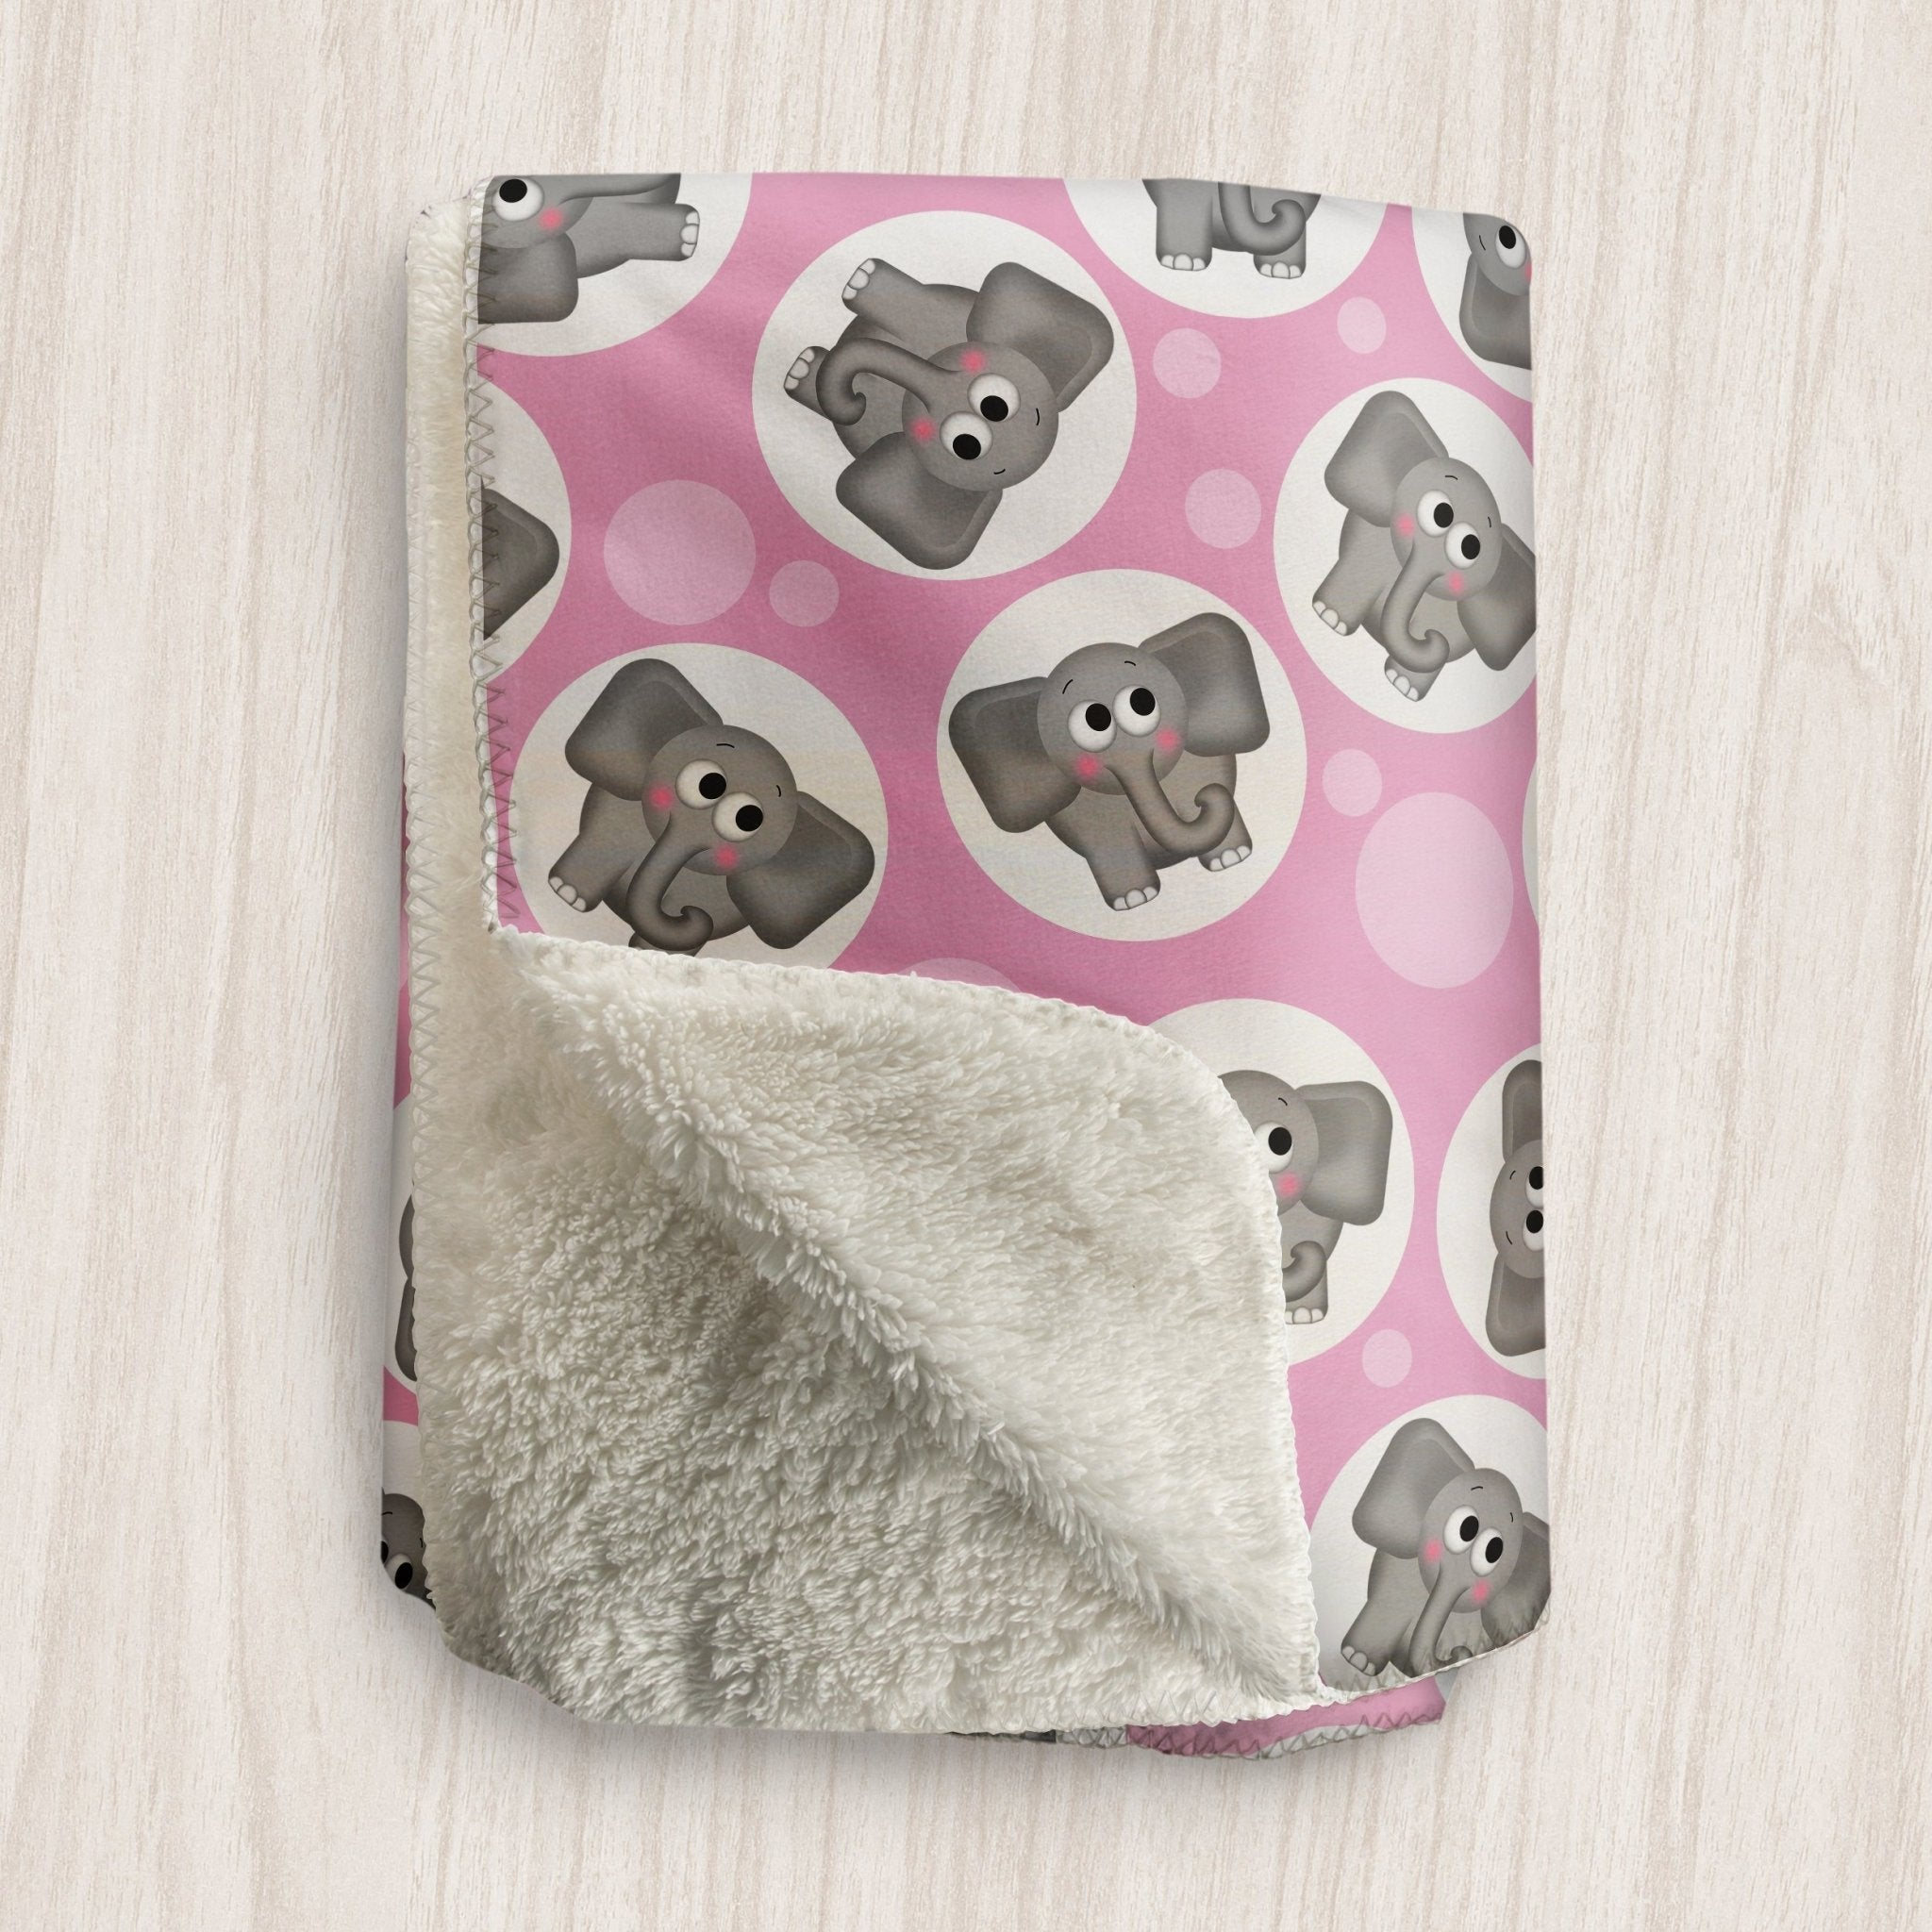 Cute Elephant Pink Sherpa Fleece Blanket at Speckle Rock